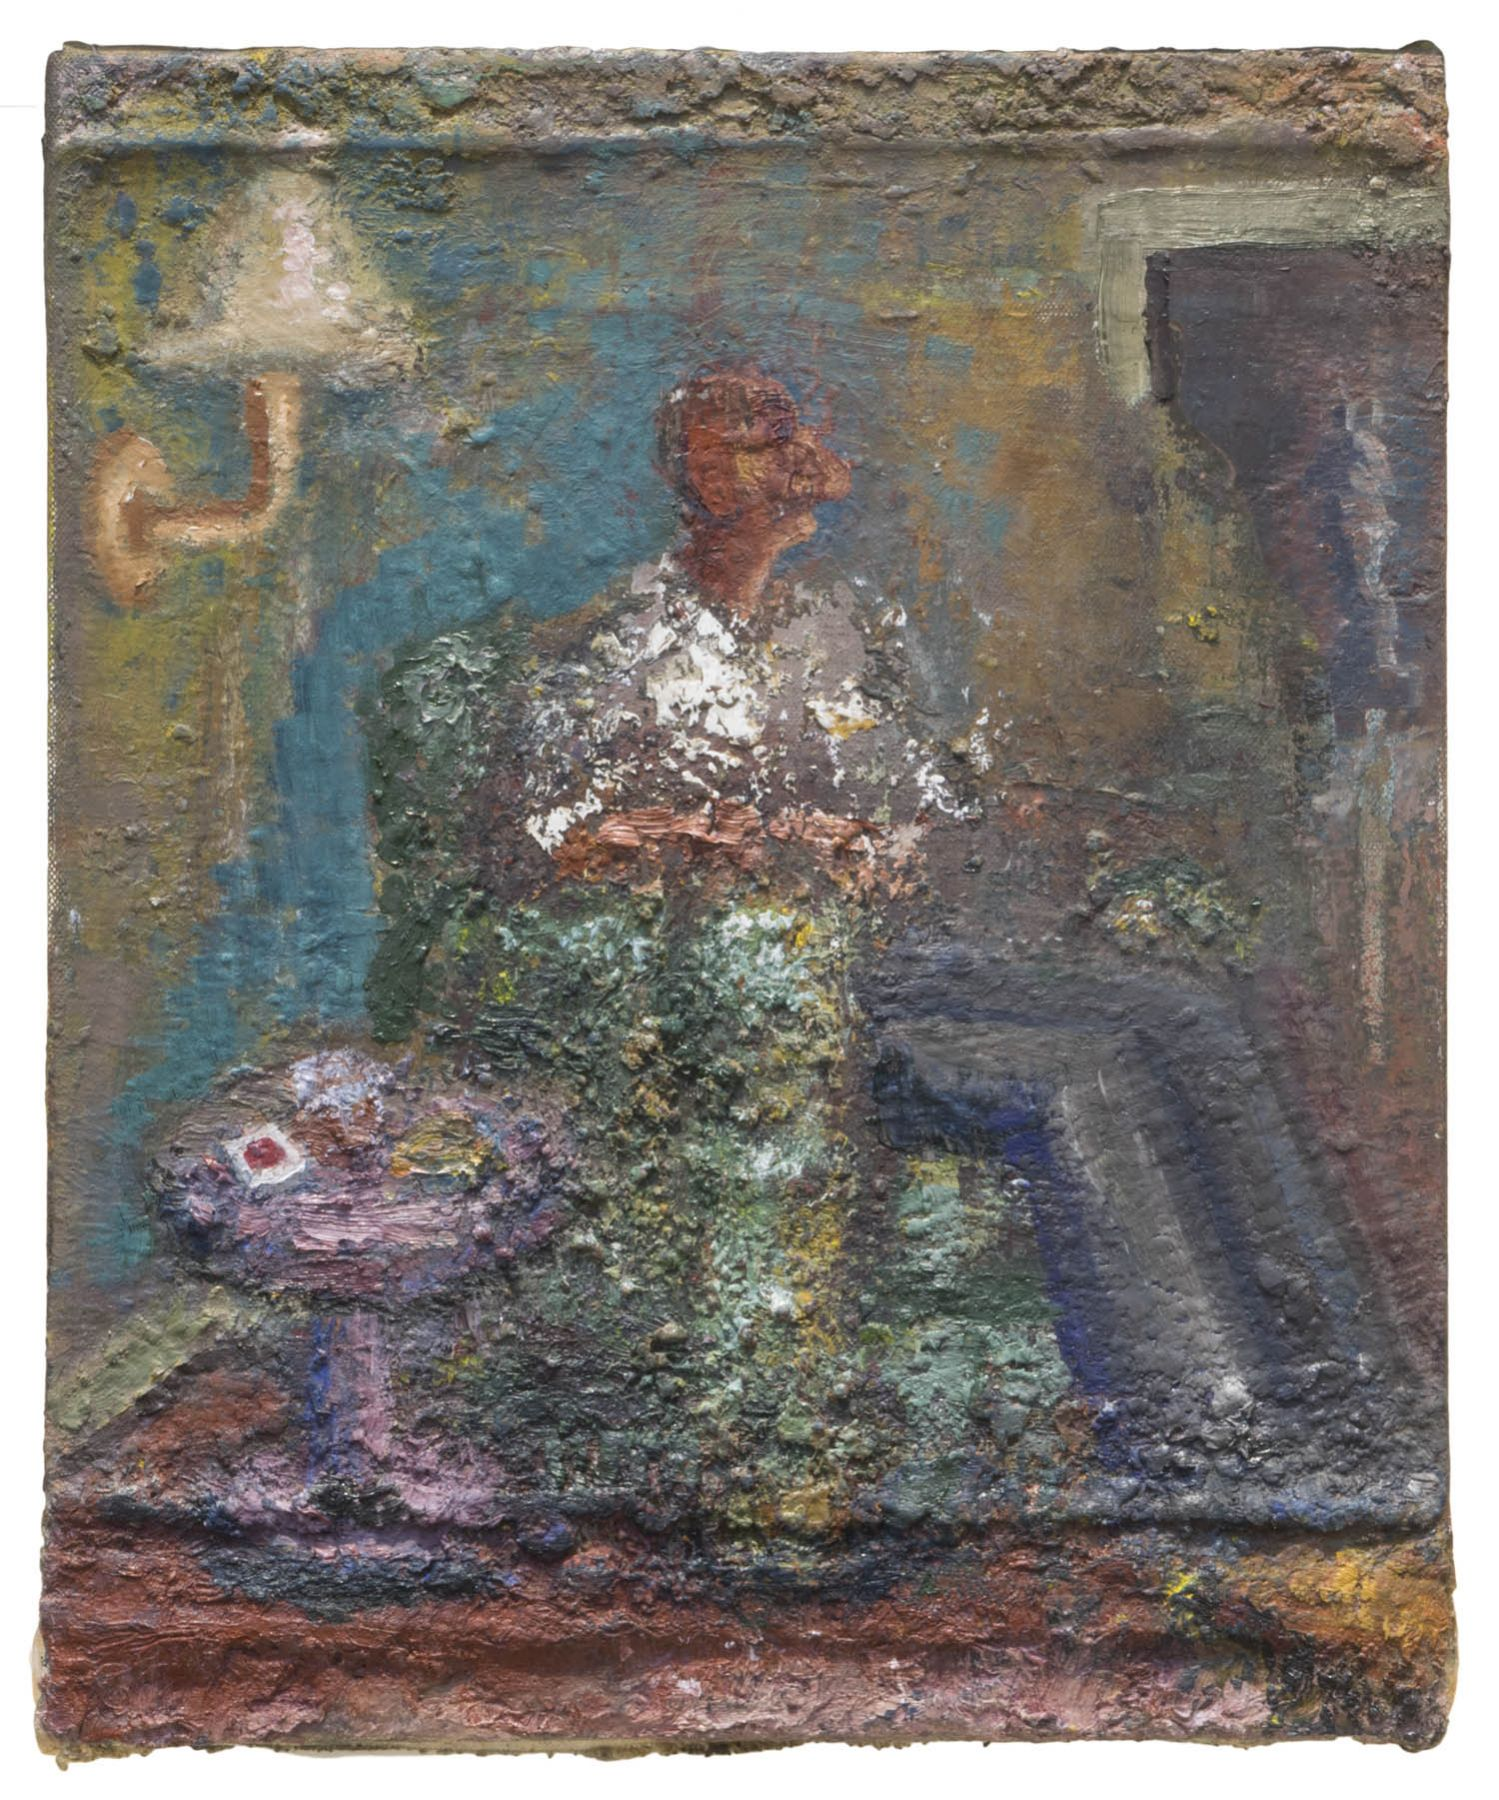 Image of Man Sitting in an Armchair, 2013